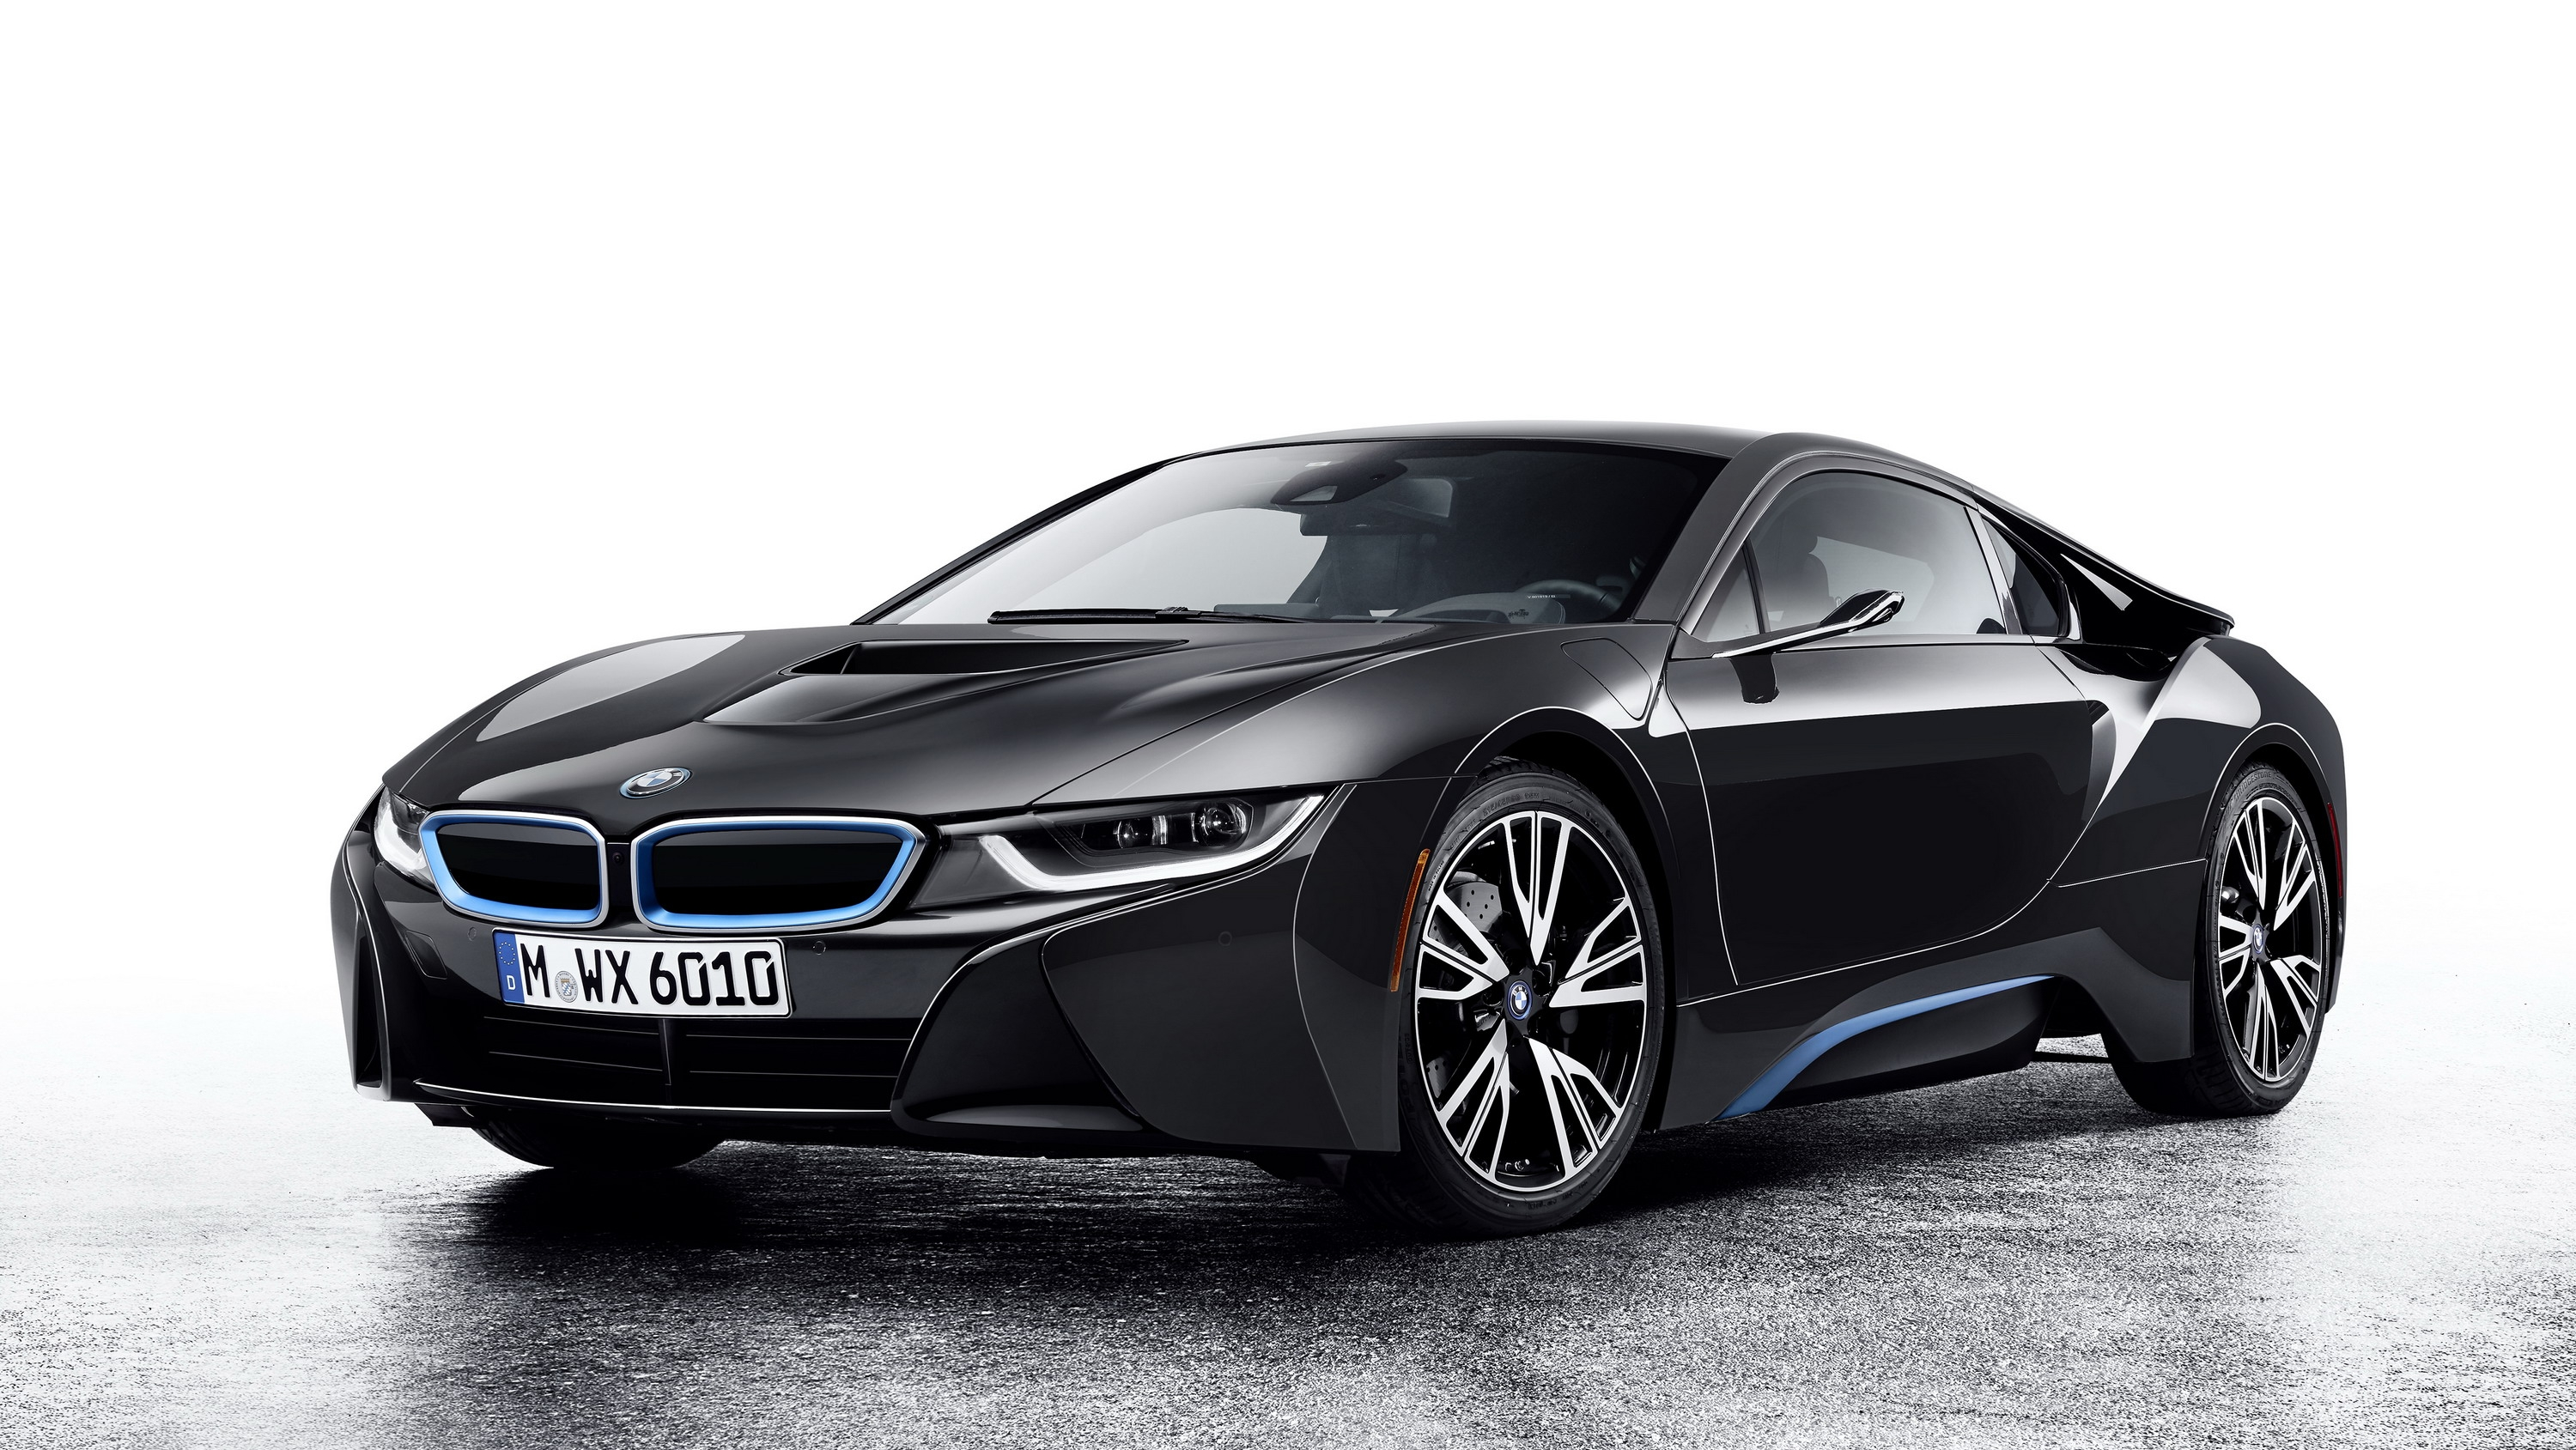 2016 bmw i8 mirrorless concept top speed. Black Bedroom Furniture Sets. Home Design Ideas